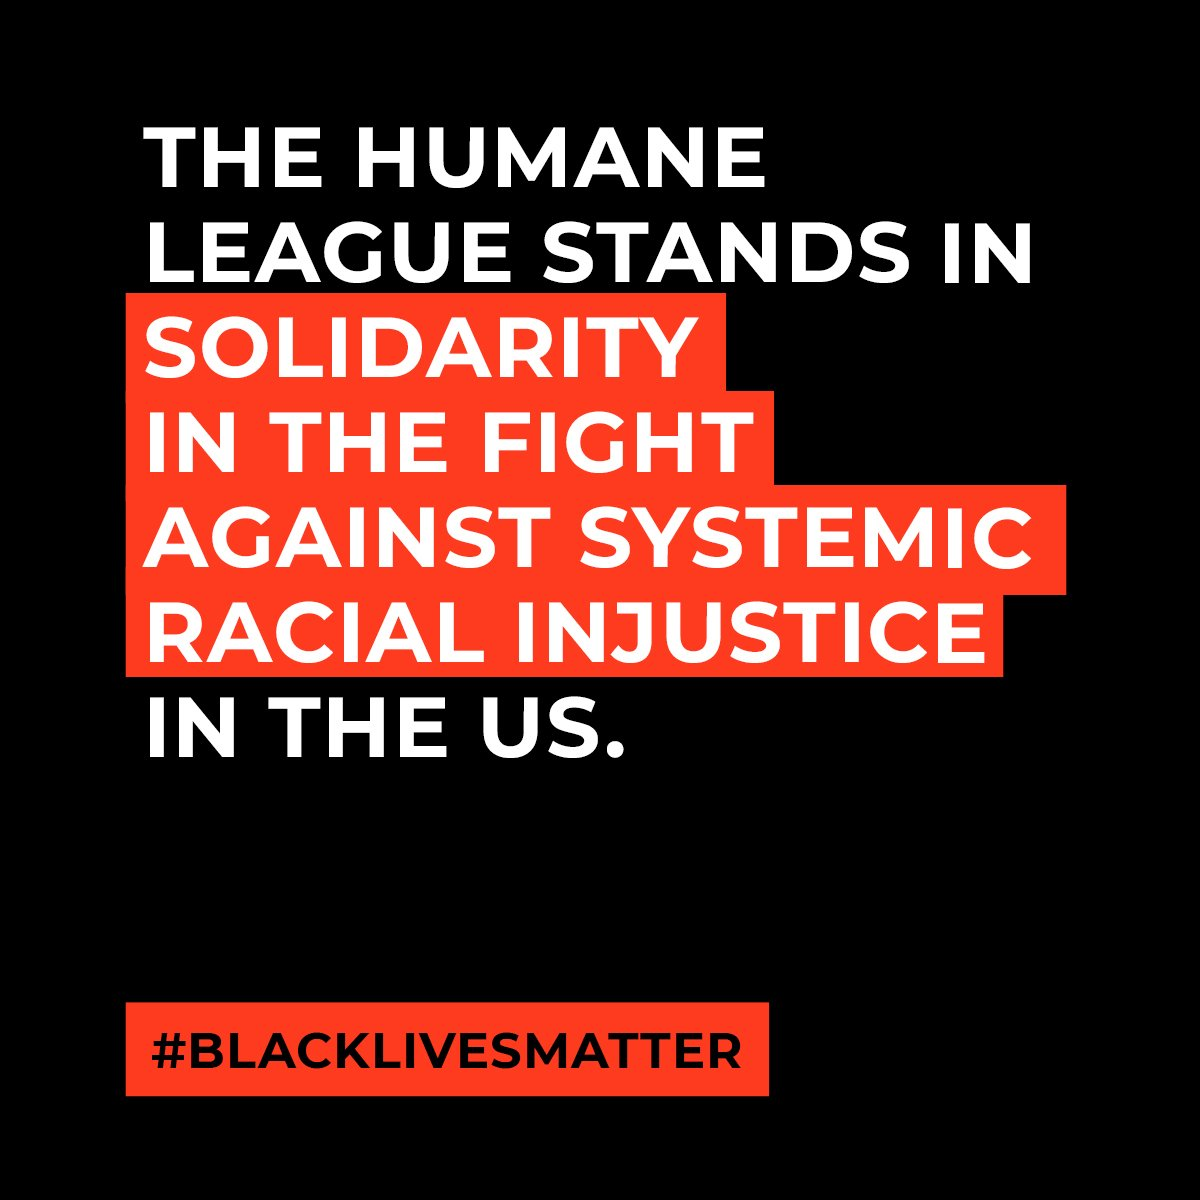 We stand for equality. We stand for diversity, equity and inclusion. We stand for the end of abuse. Racial inequality is unacceptable. Heres how you can support and take action in the fight against racial inequality: blacklivesmatters.carrd.co #BlackLivesMatter